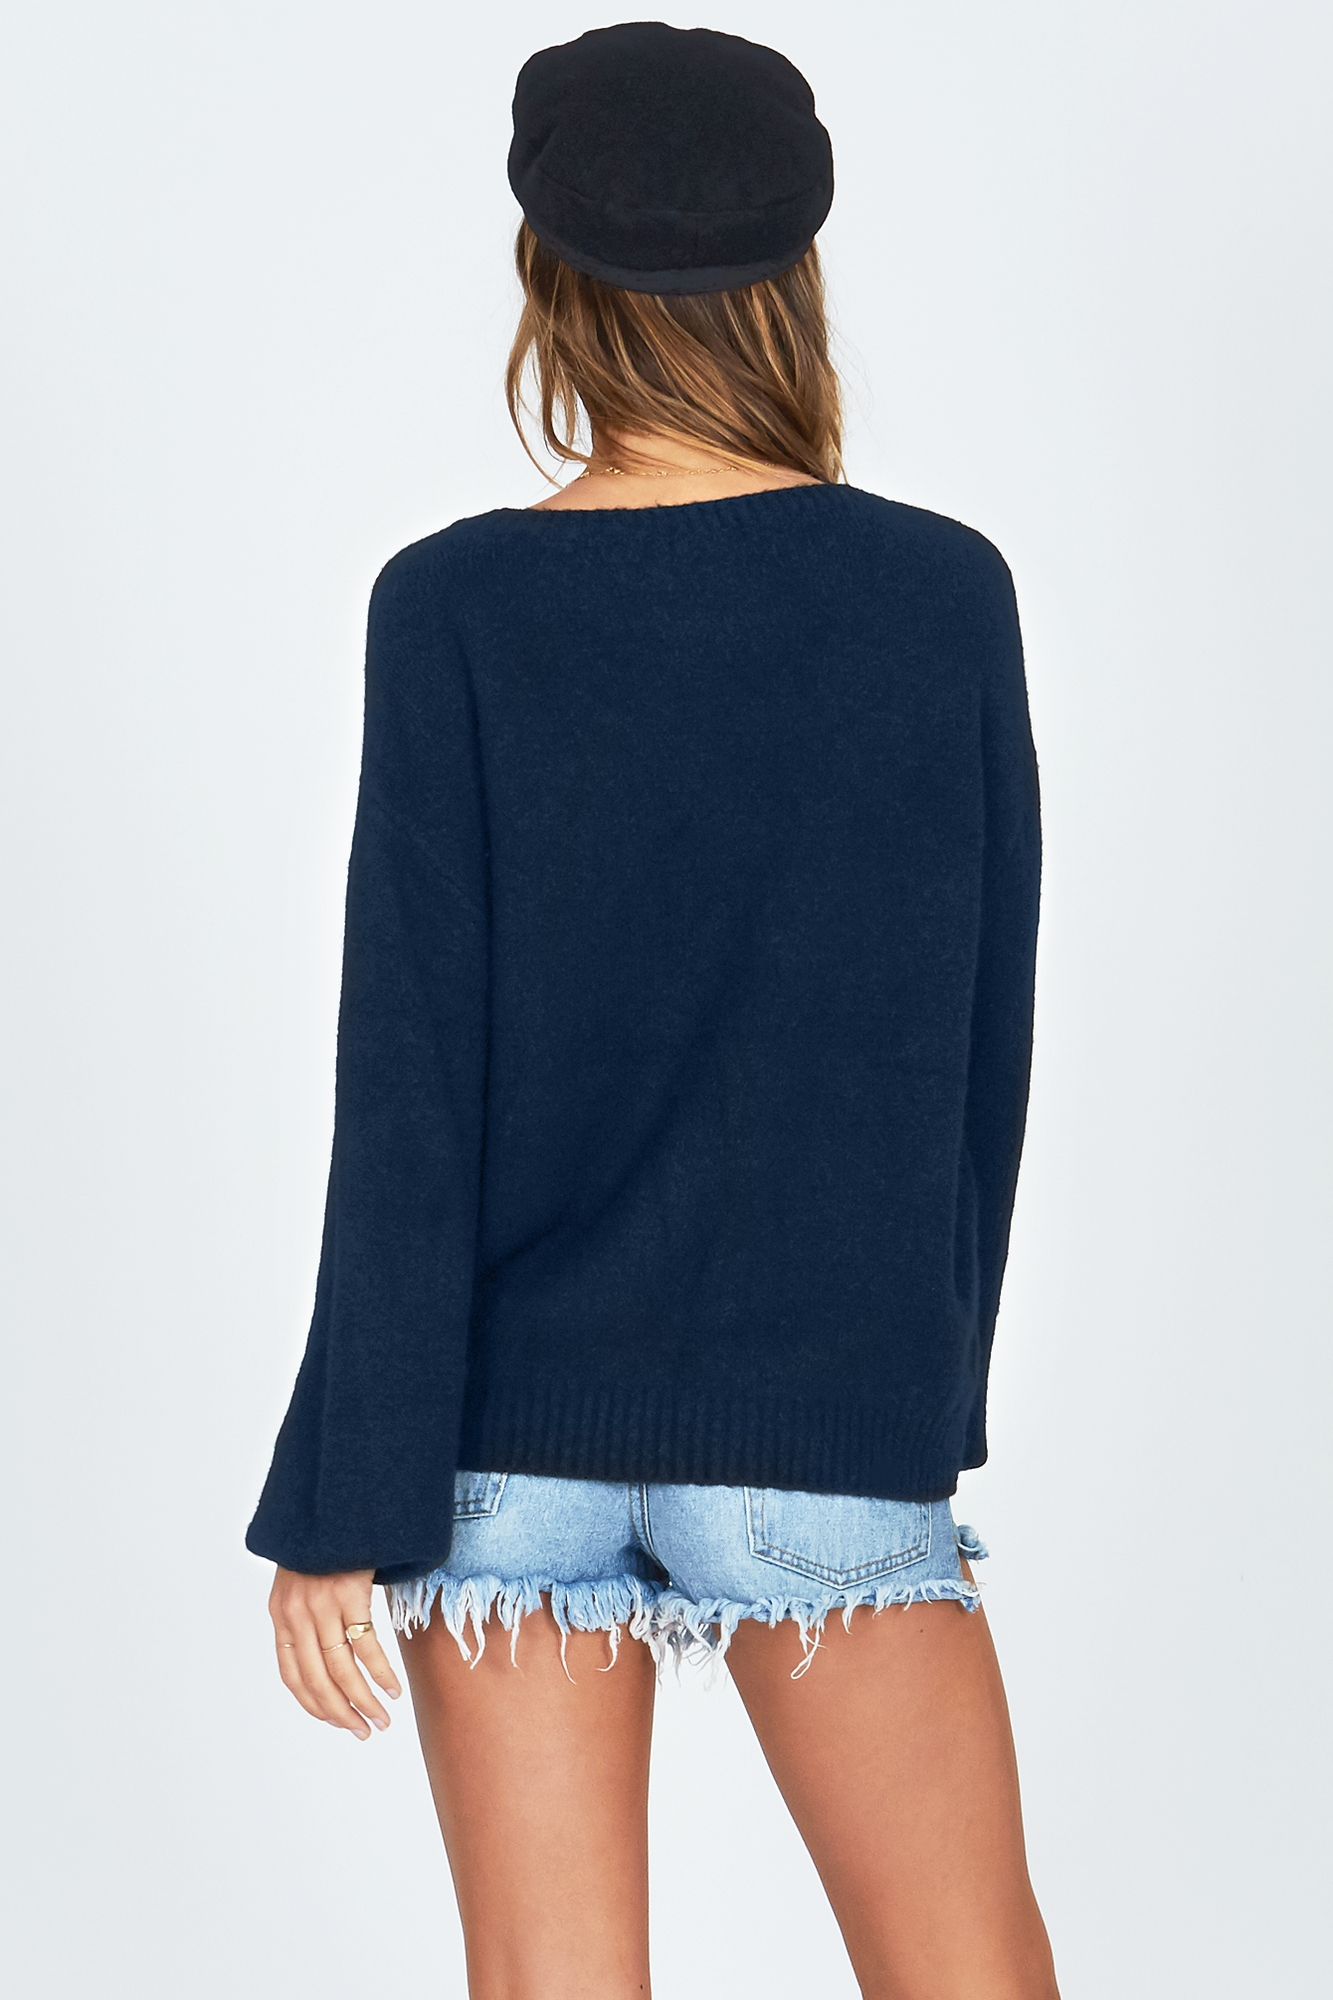 Rooftop View Sweater